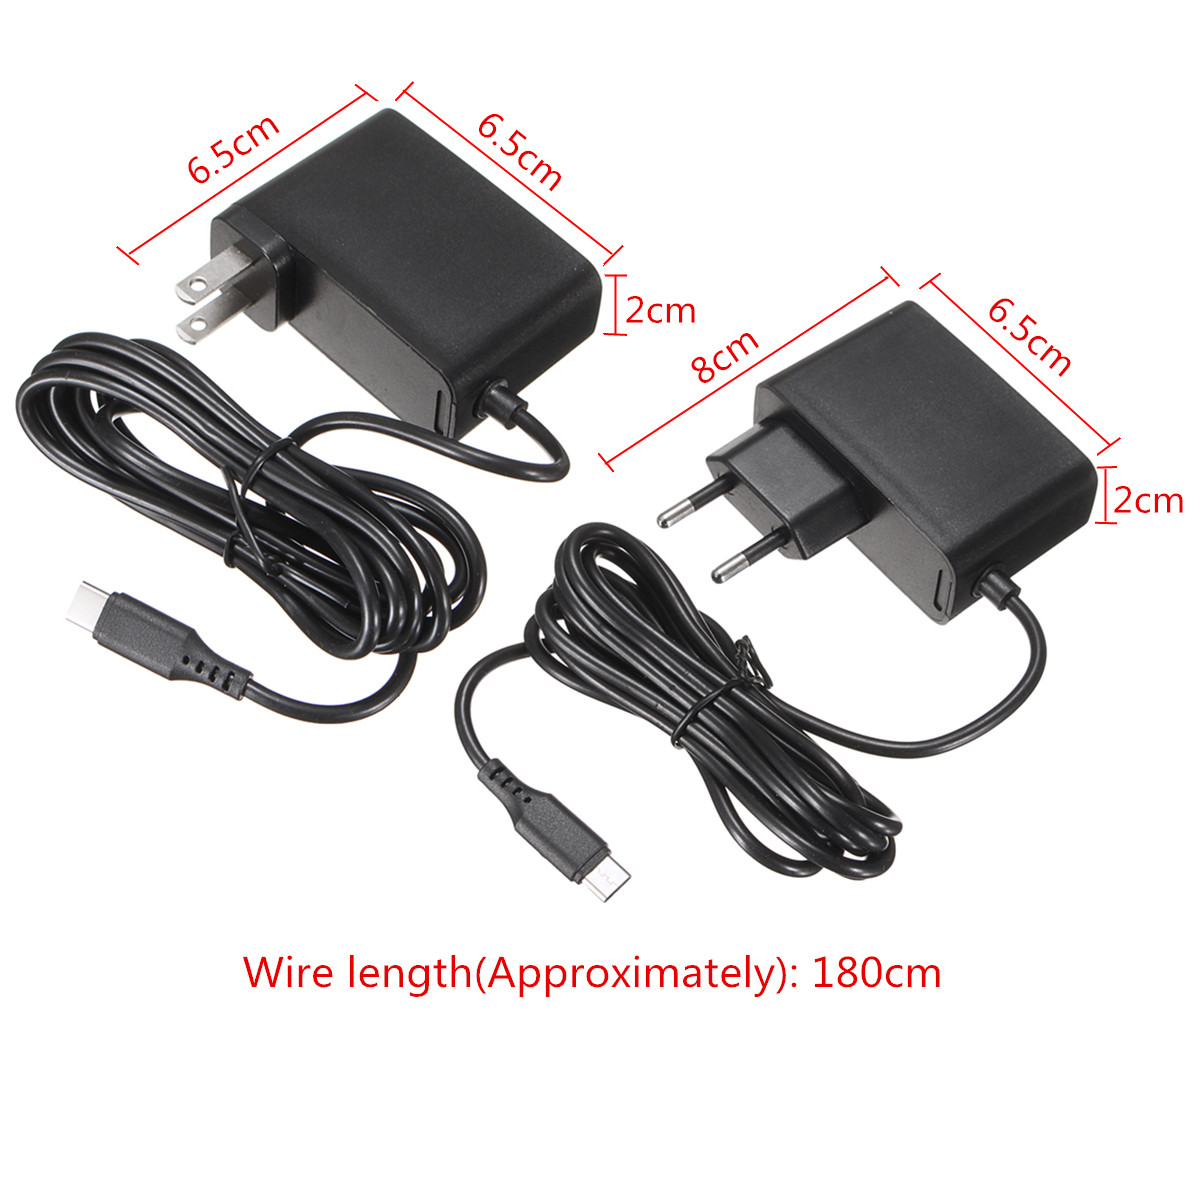 5V 2.4A Type-C Power Supply AC Adapter Travel Charger UK EU AU Plug for Nintendo Switch Cellphone